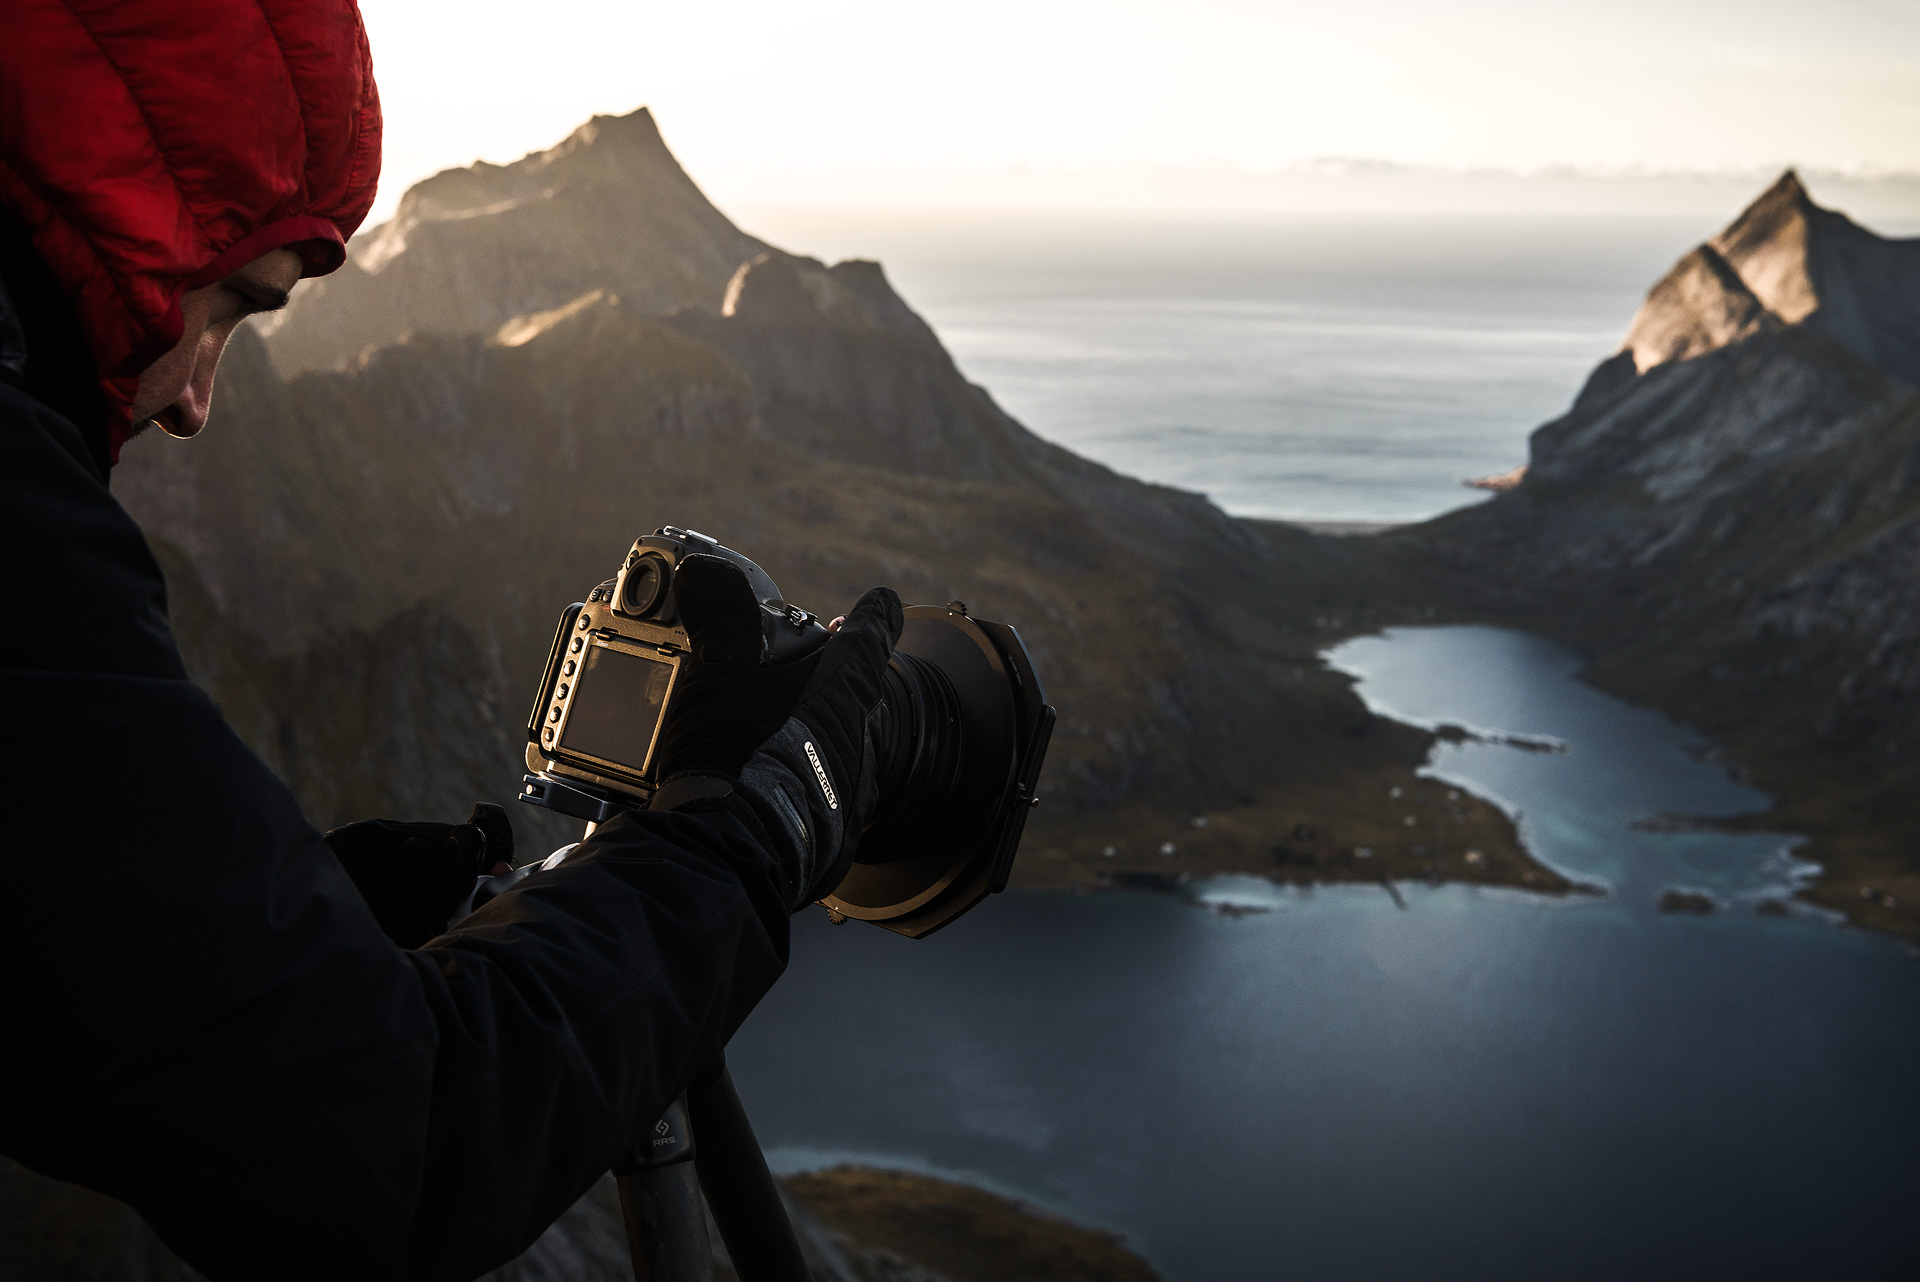 Photographer looking at the LCD view of their camera with a mountain landscape in the background